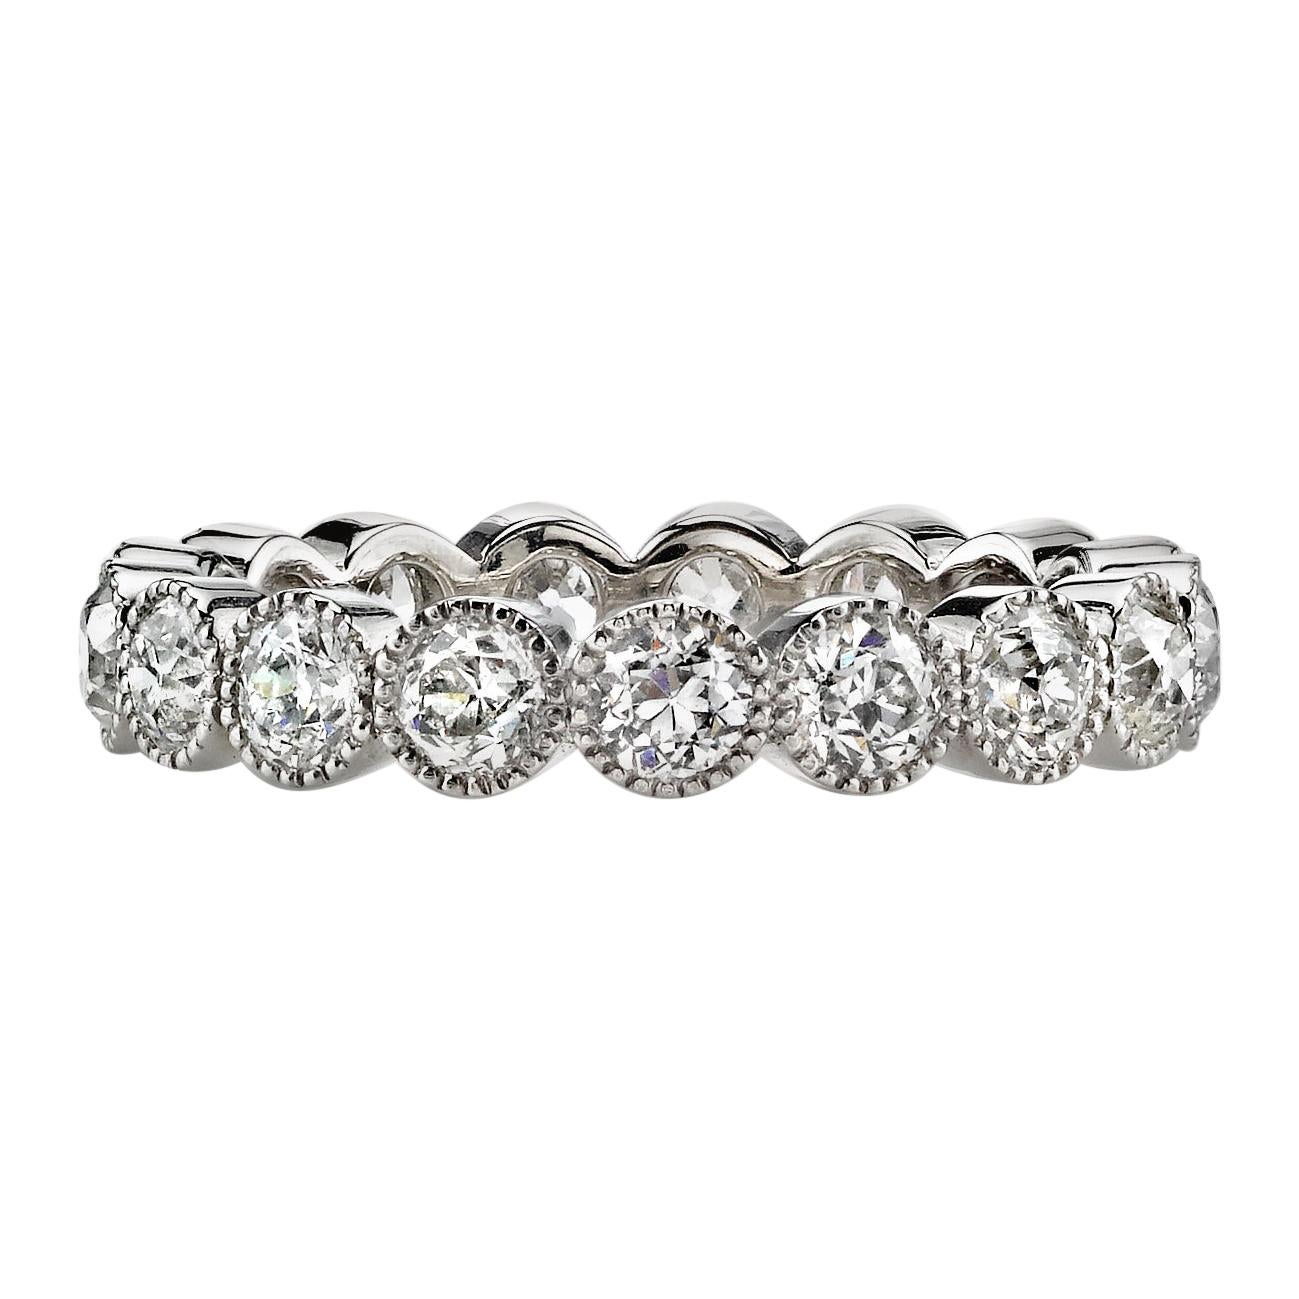 1.75 Carat Old European Cut Diamonds Set in a Handcrafted Platinum Eternity Band